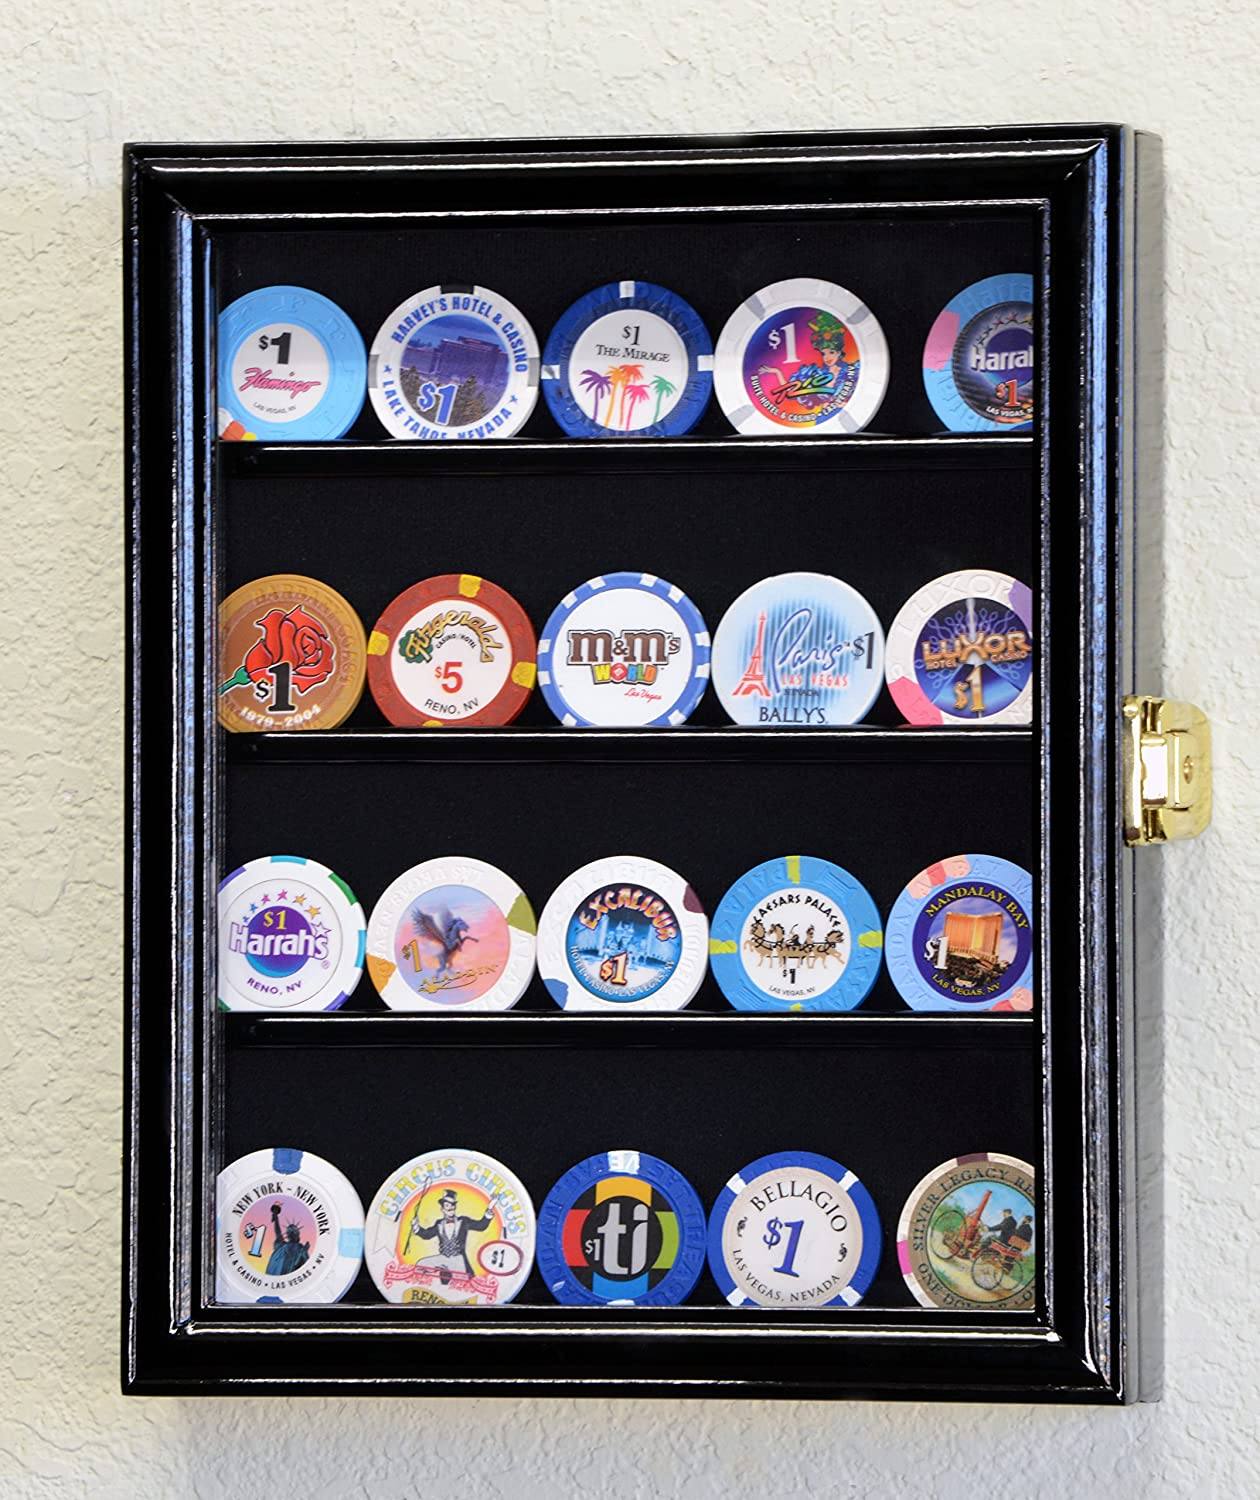 XS Military Challenge Coin Display Case Cabinet Holder Rack Box w/UV Protection -Black Finish